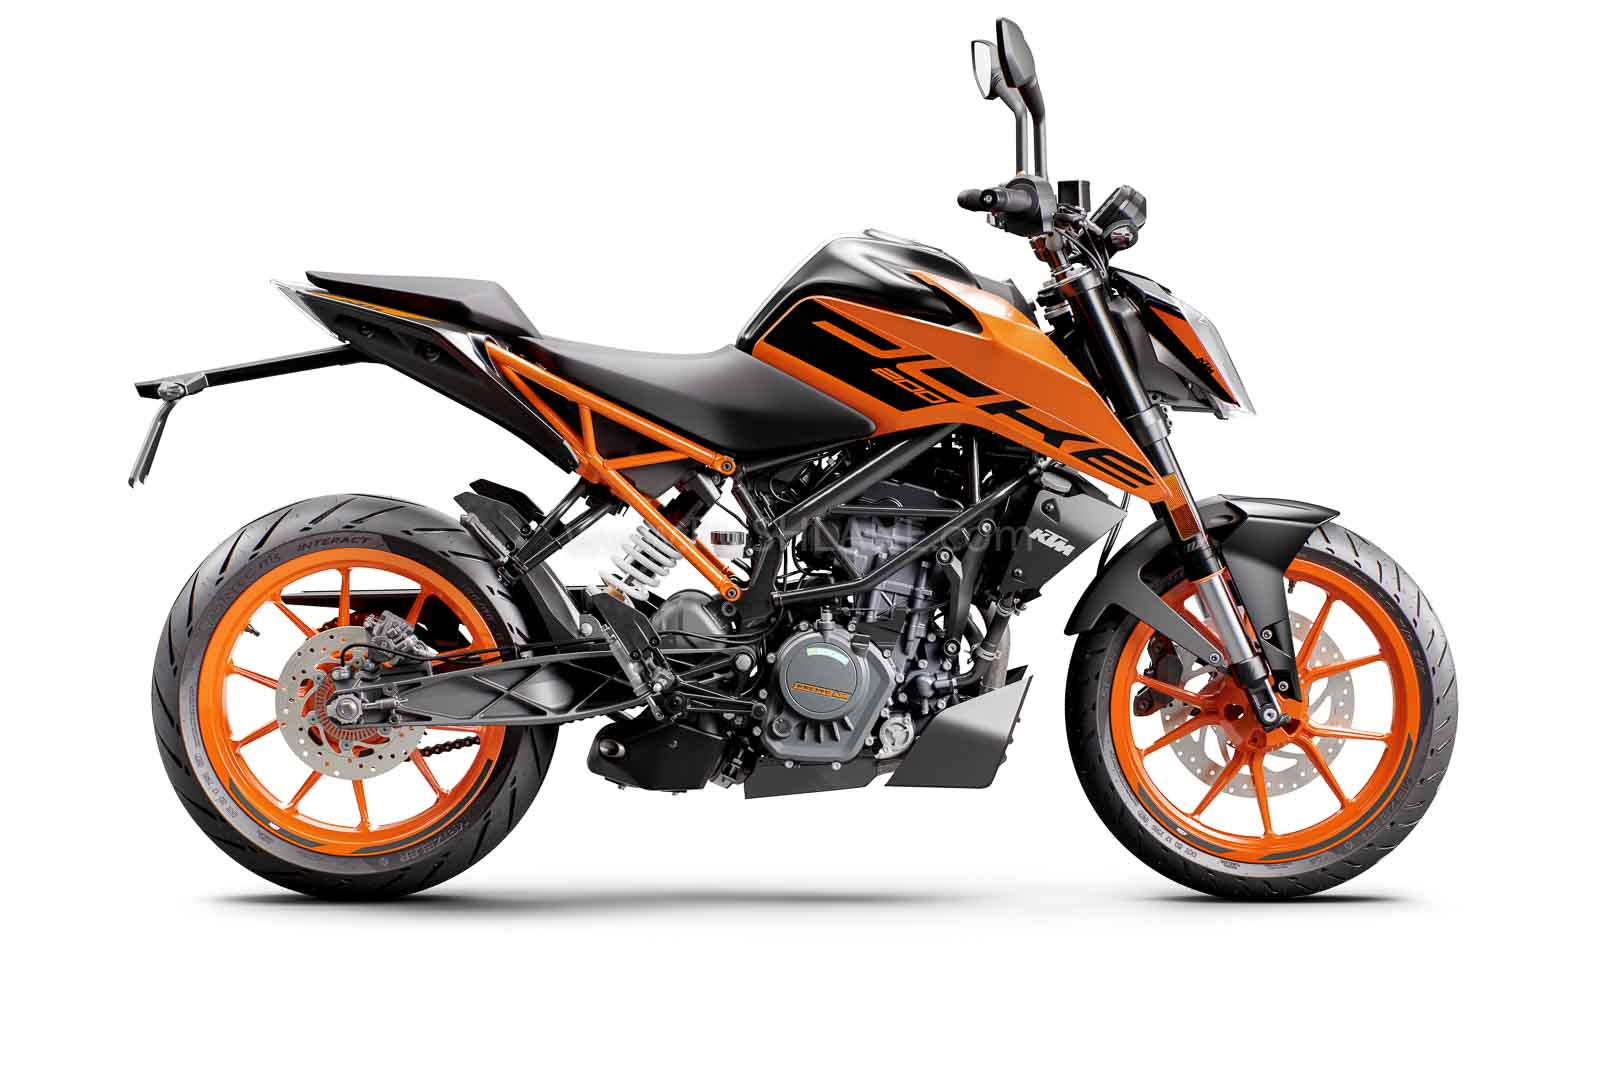 Bs6 Ktm Duke And Rc Motorcycles Launched Price Specs Photos